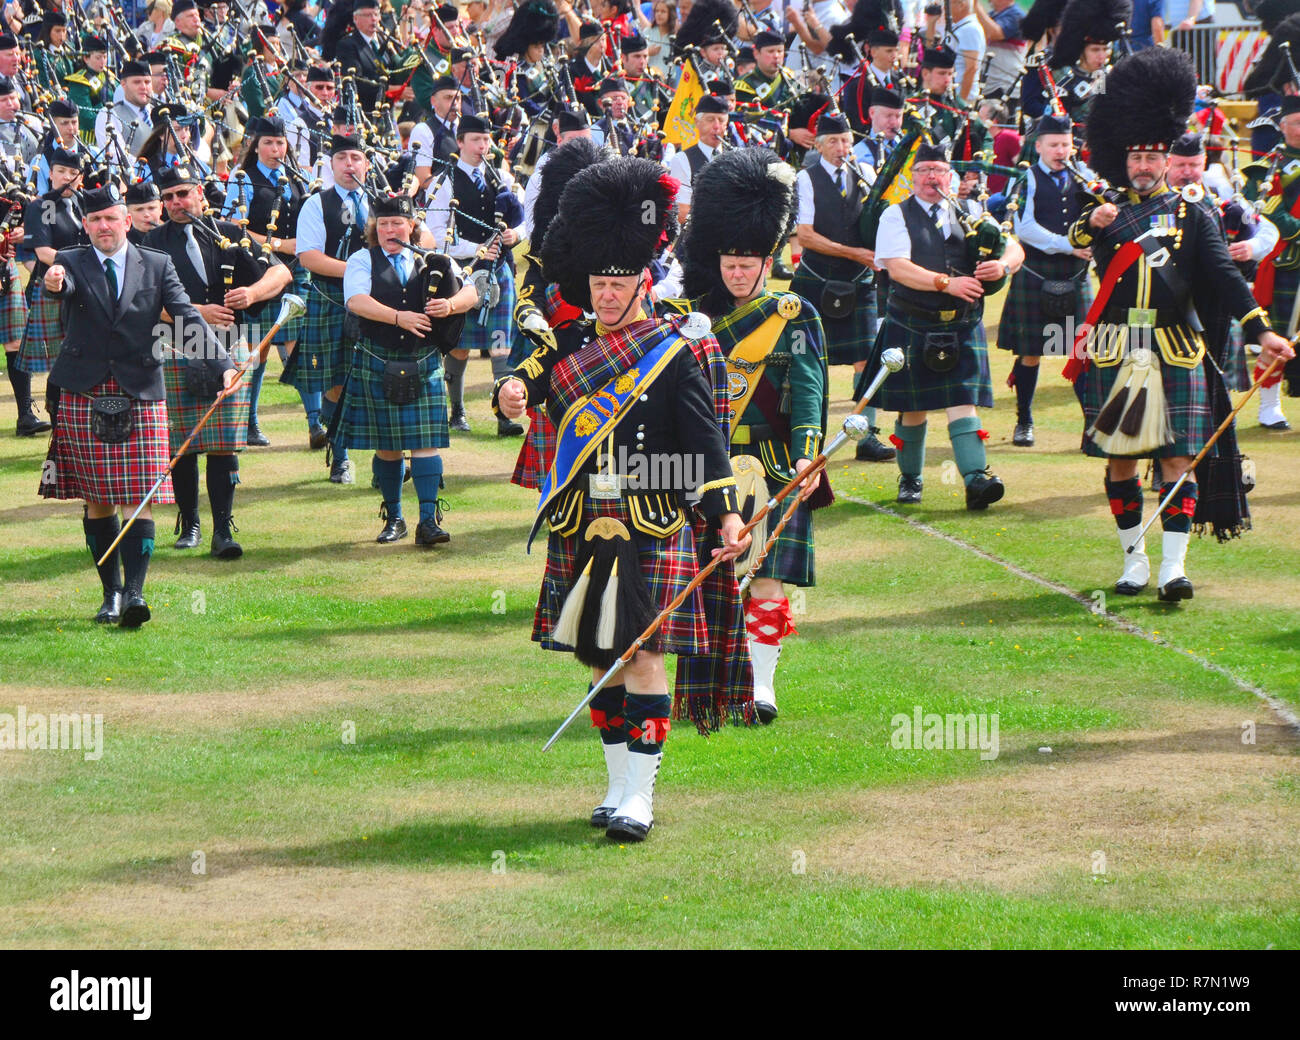 Drum Major Mace Stock Photos & Drum Major Mace Stock Images - Alamy